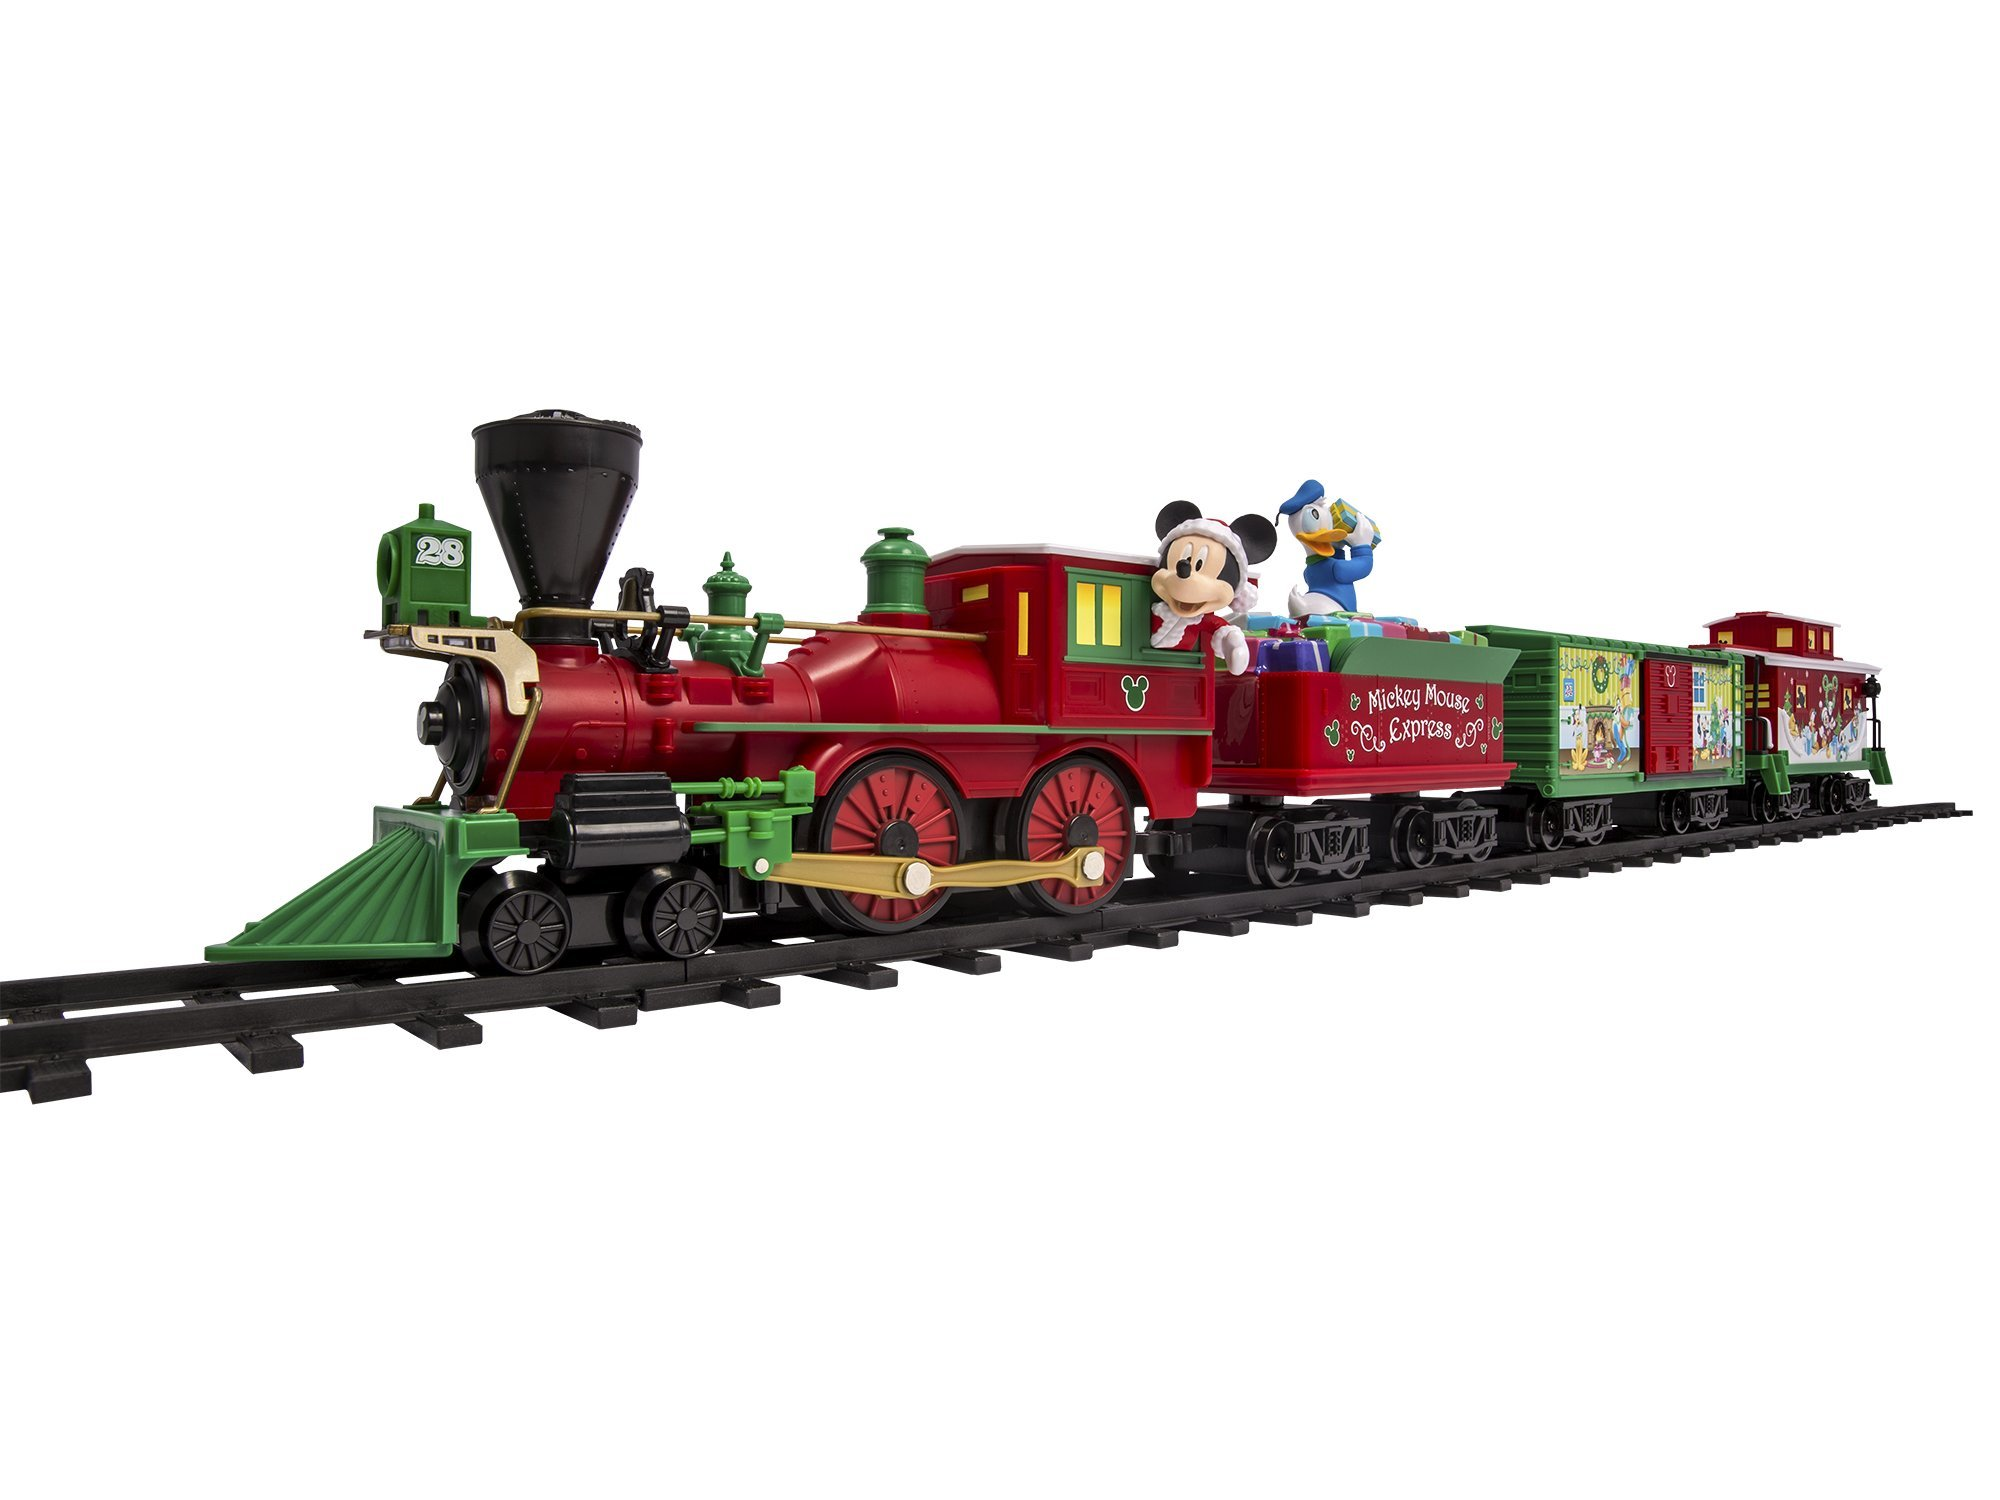 2940092b5 This Mickey Mouse Christmas train set really has the Christmas feel to it  along with great quality and bright vivid colors.